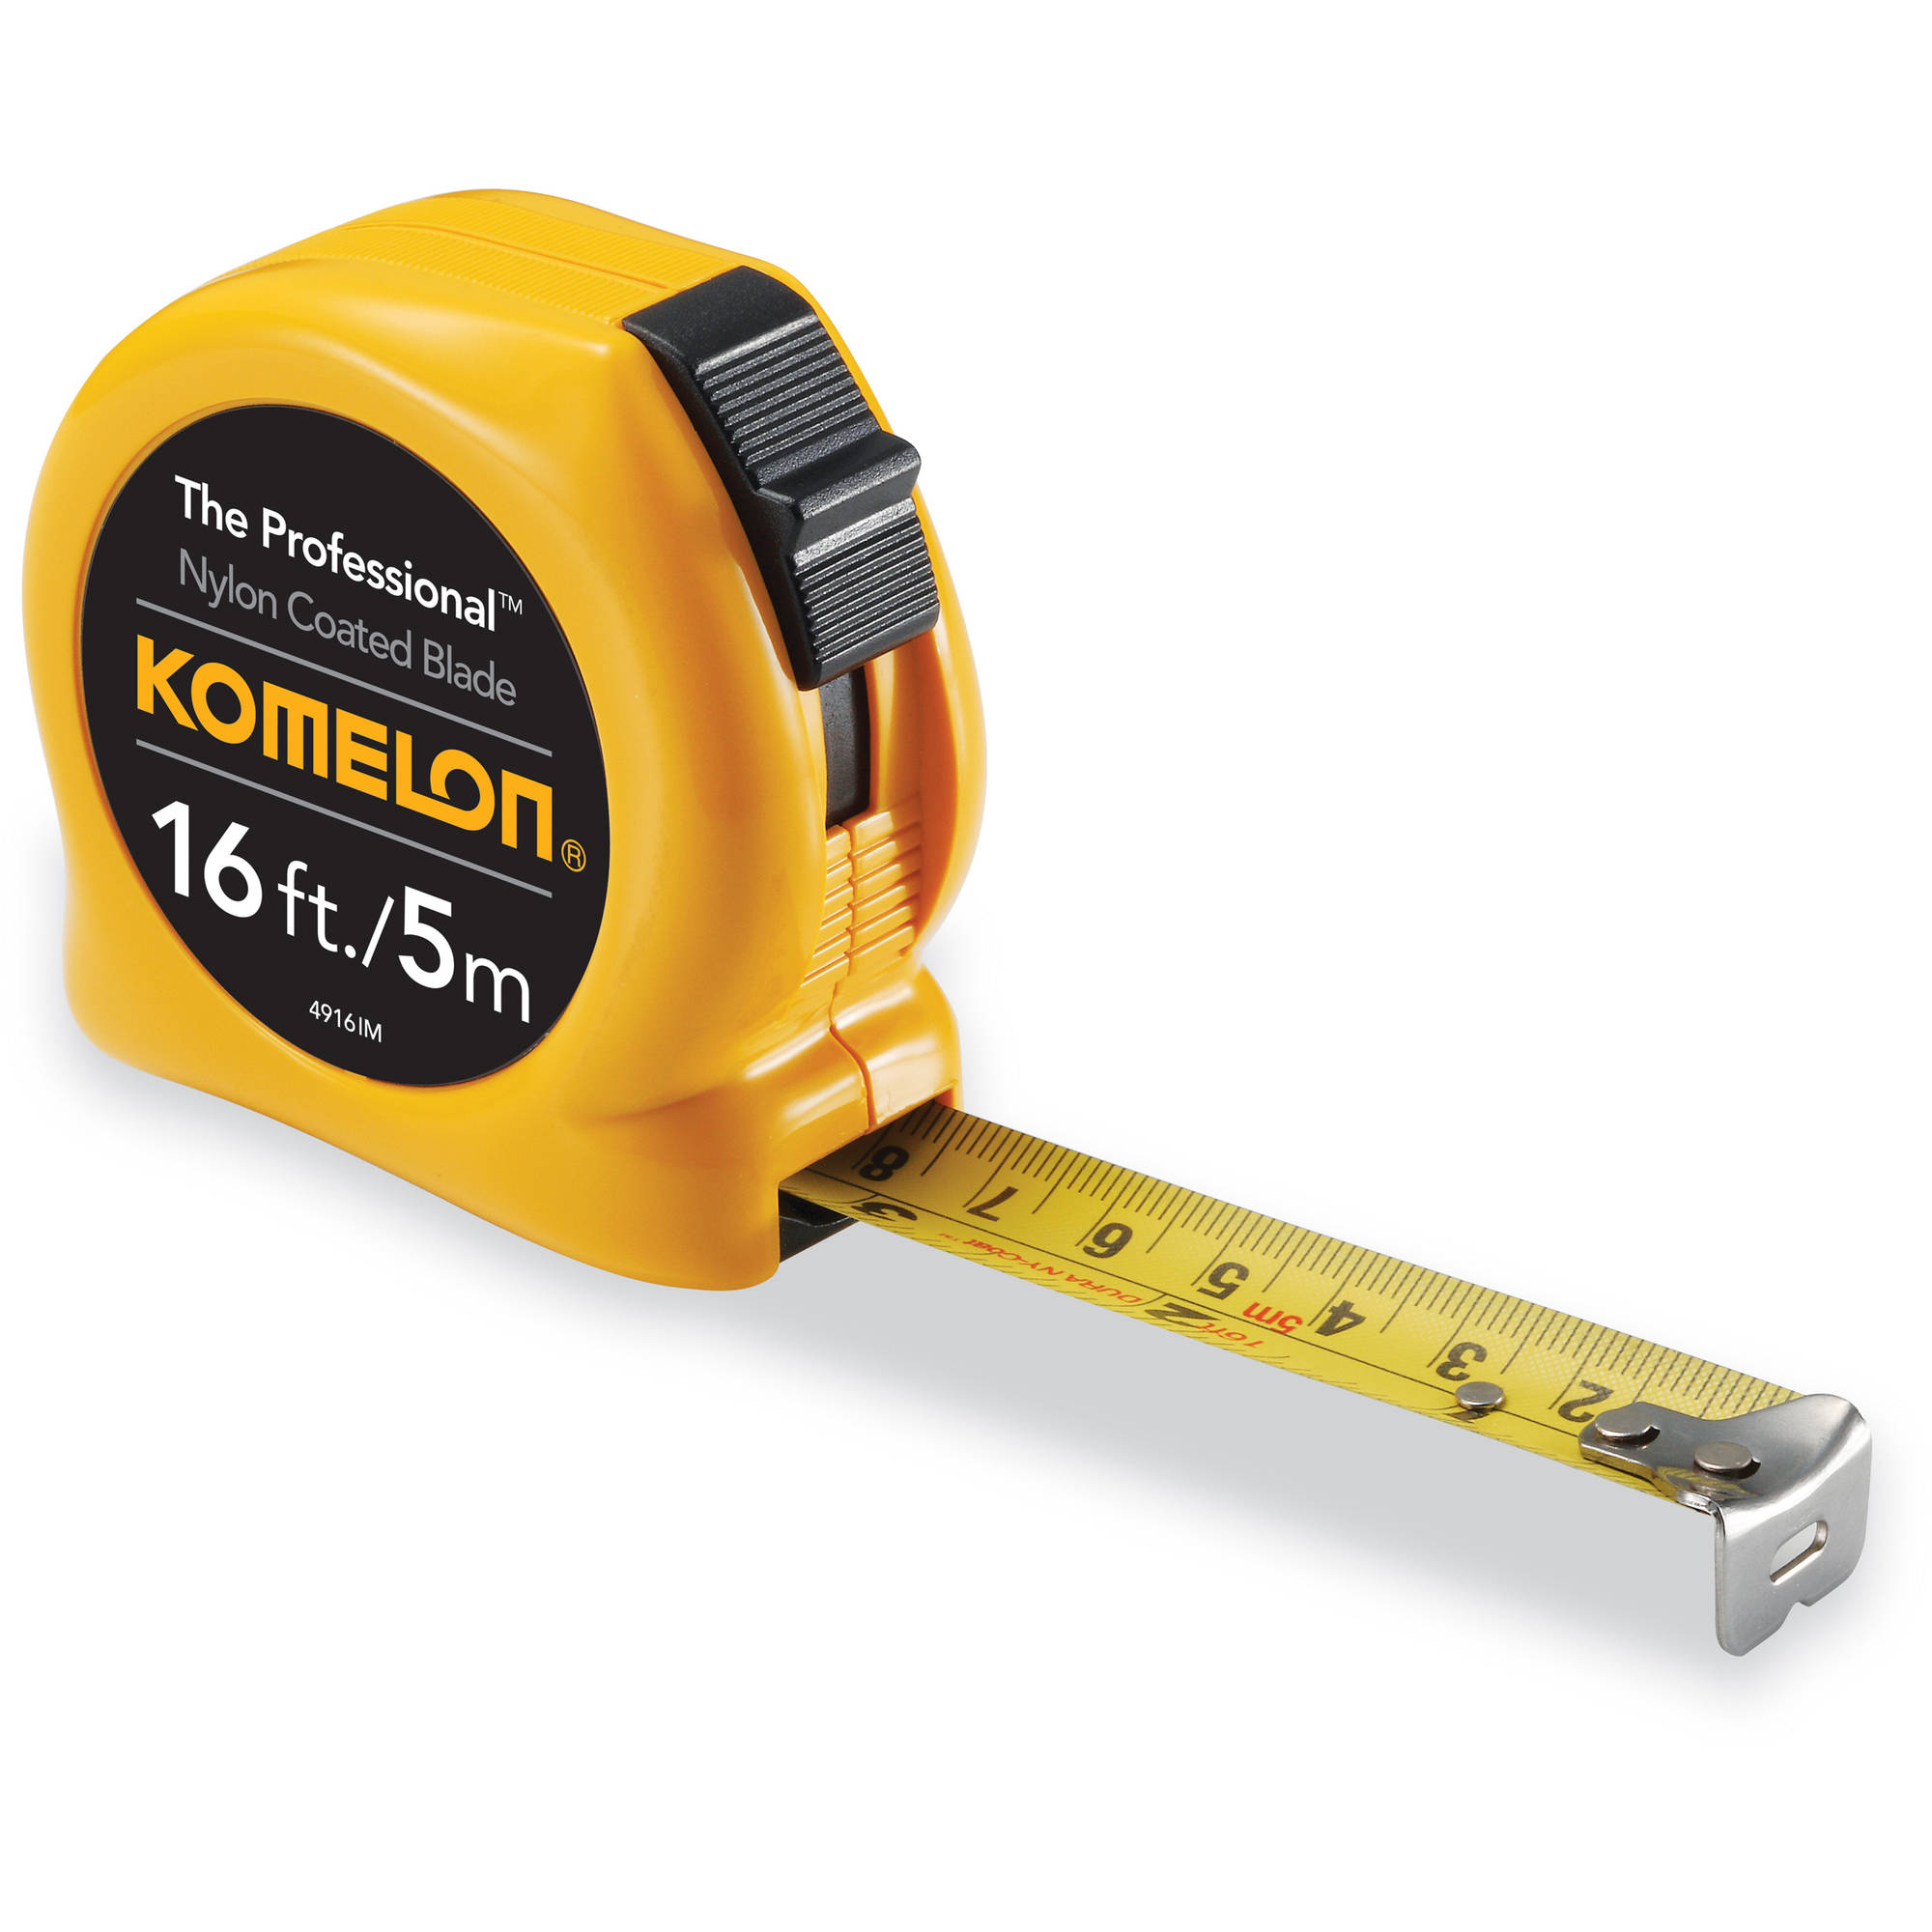 Komelon 16'/5m Professional Inch/Metric Tape Measure